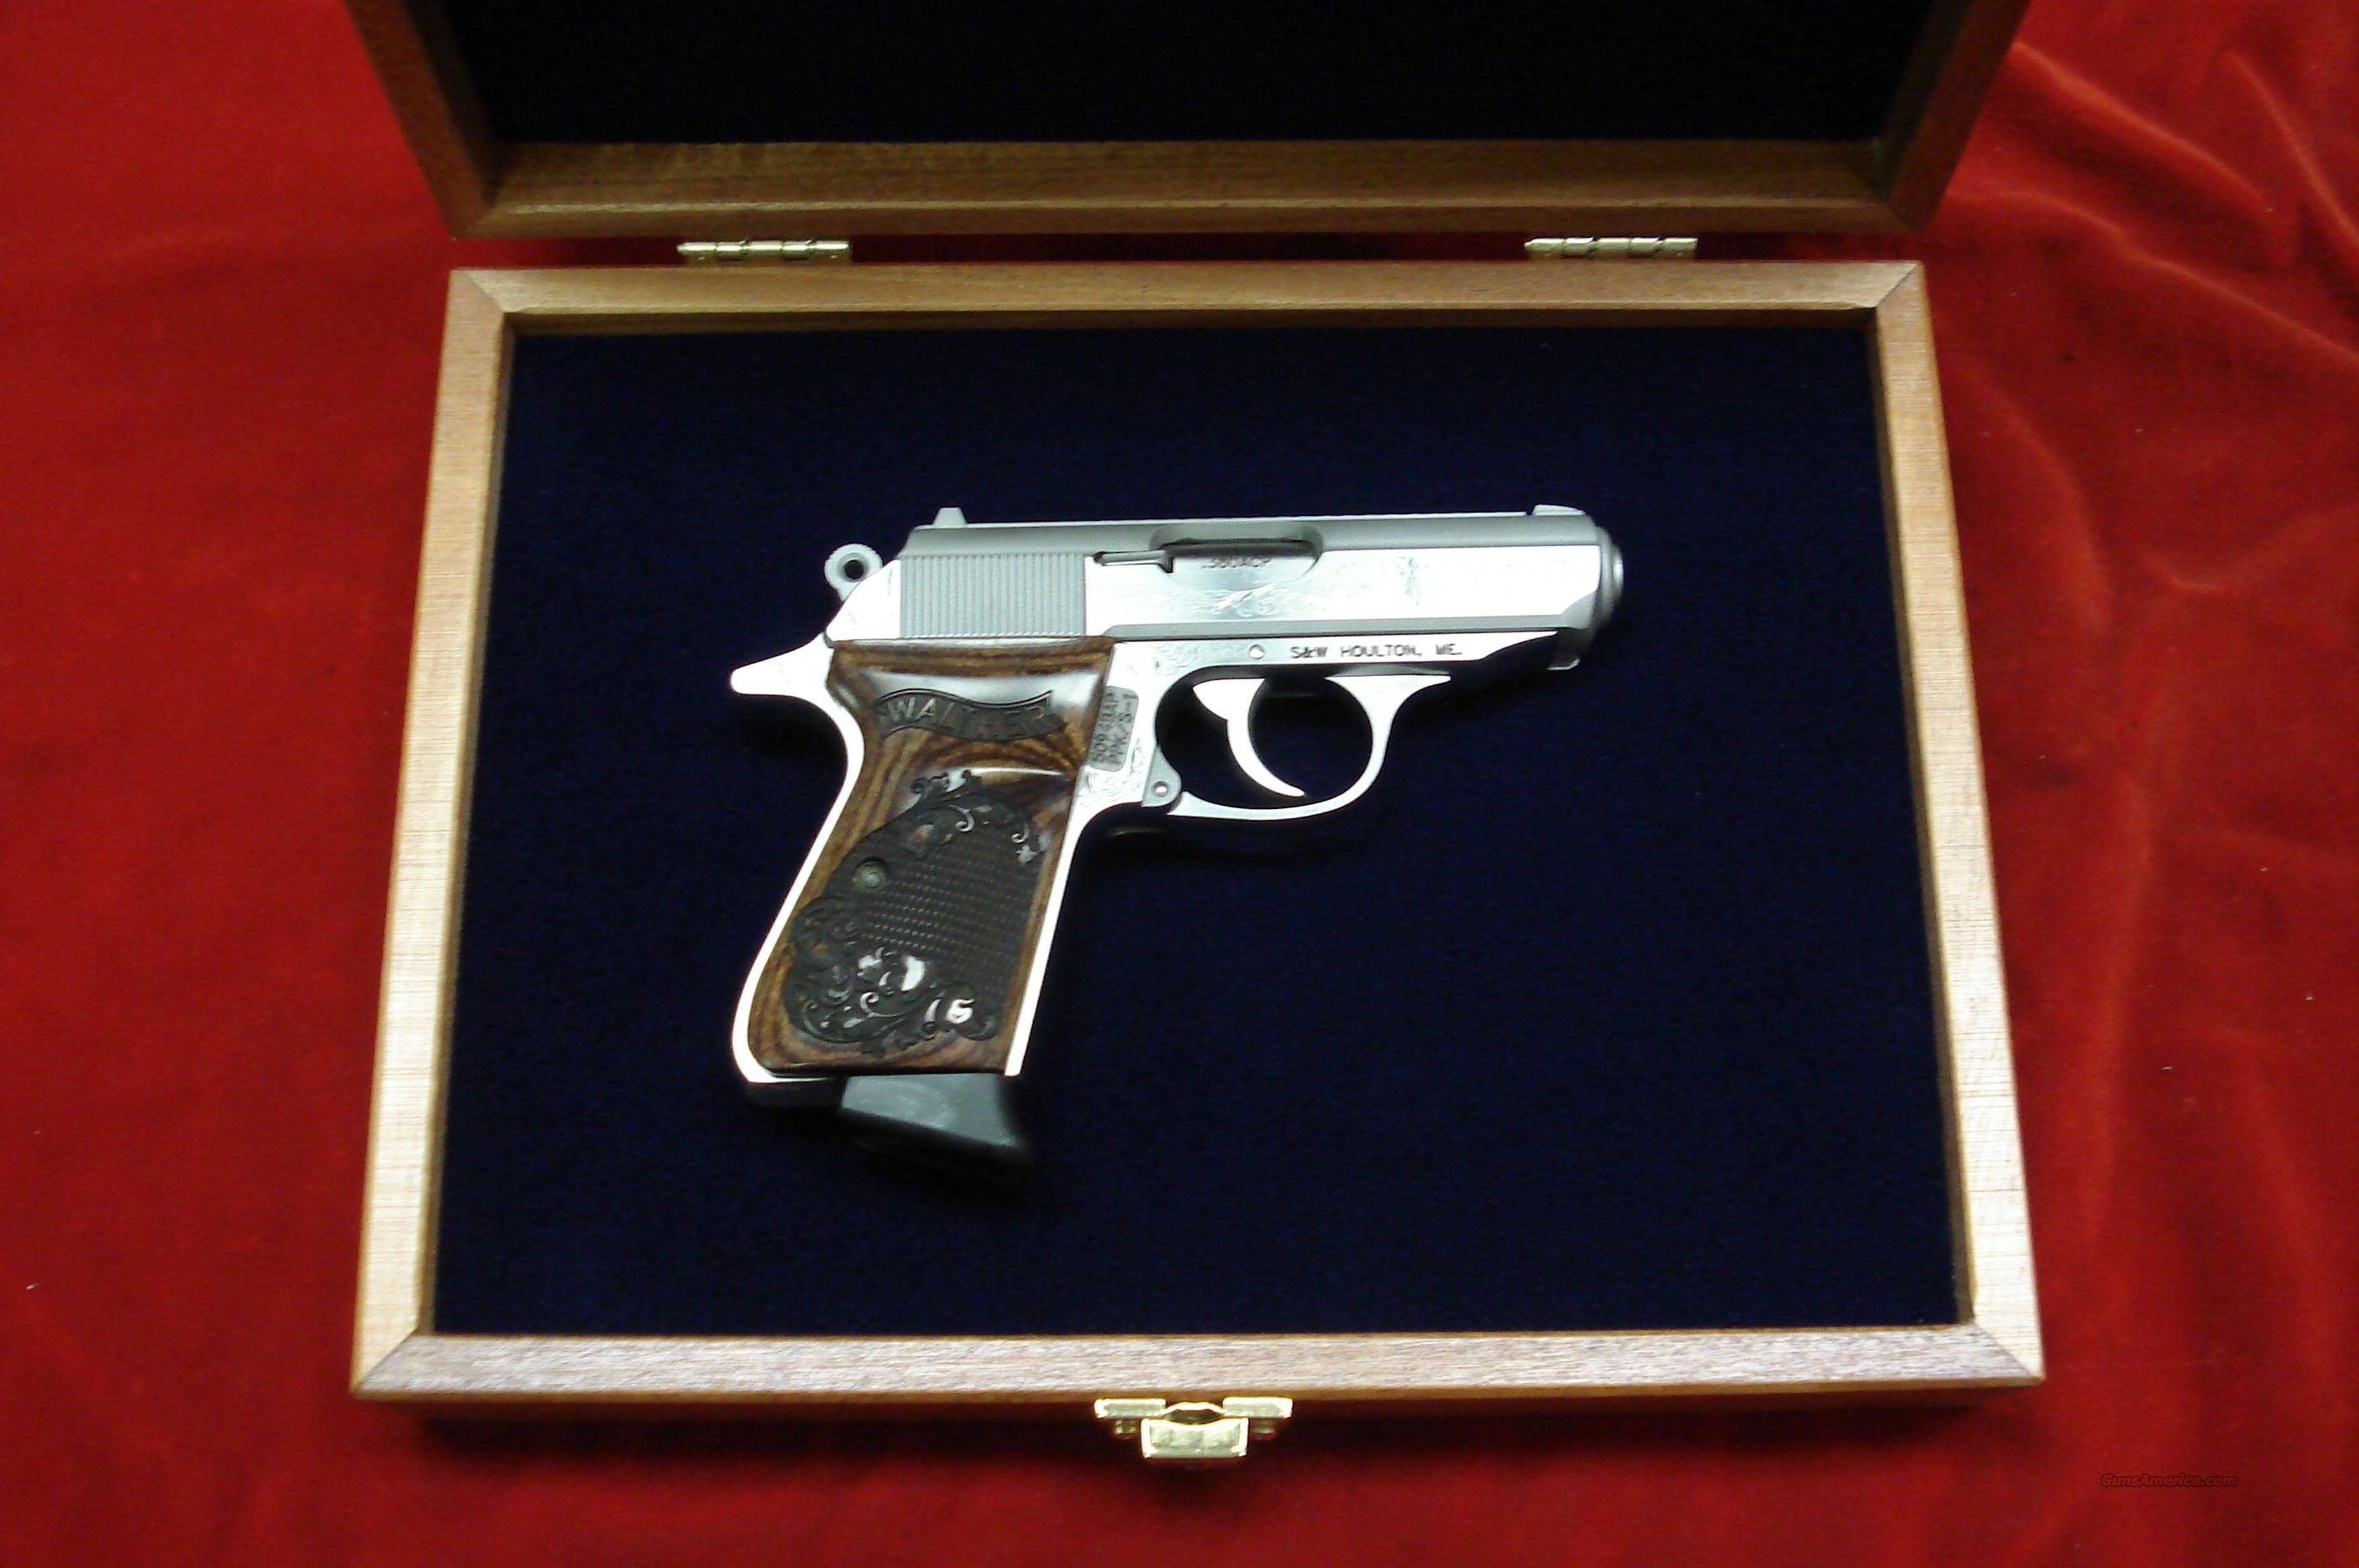 WALTHER PPK/S 380 CAL. ENGRAVED STAINLESS W/PRESENTATION CASE NEW  Guns > Pistols > Walther Pistols > Post WWII > PP Series